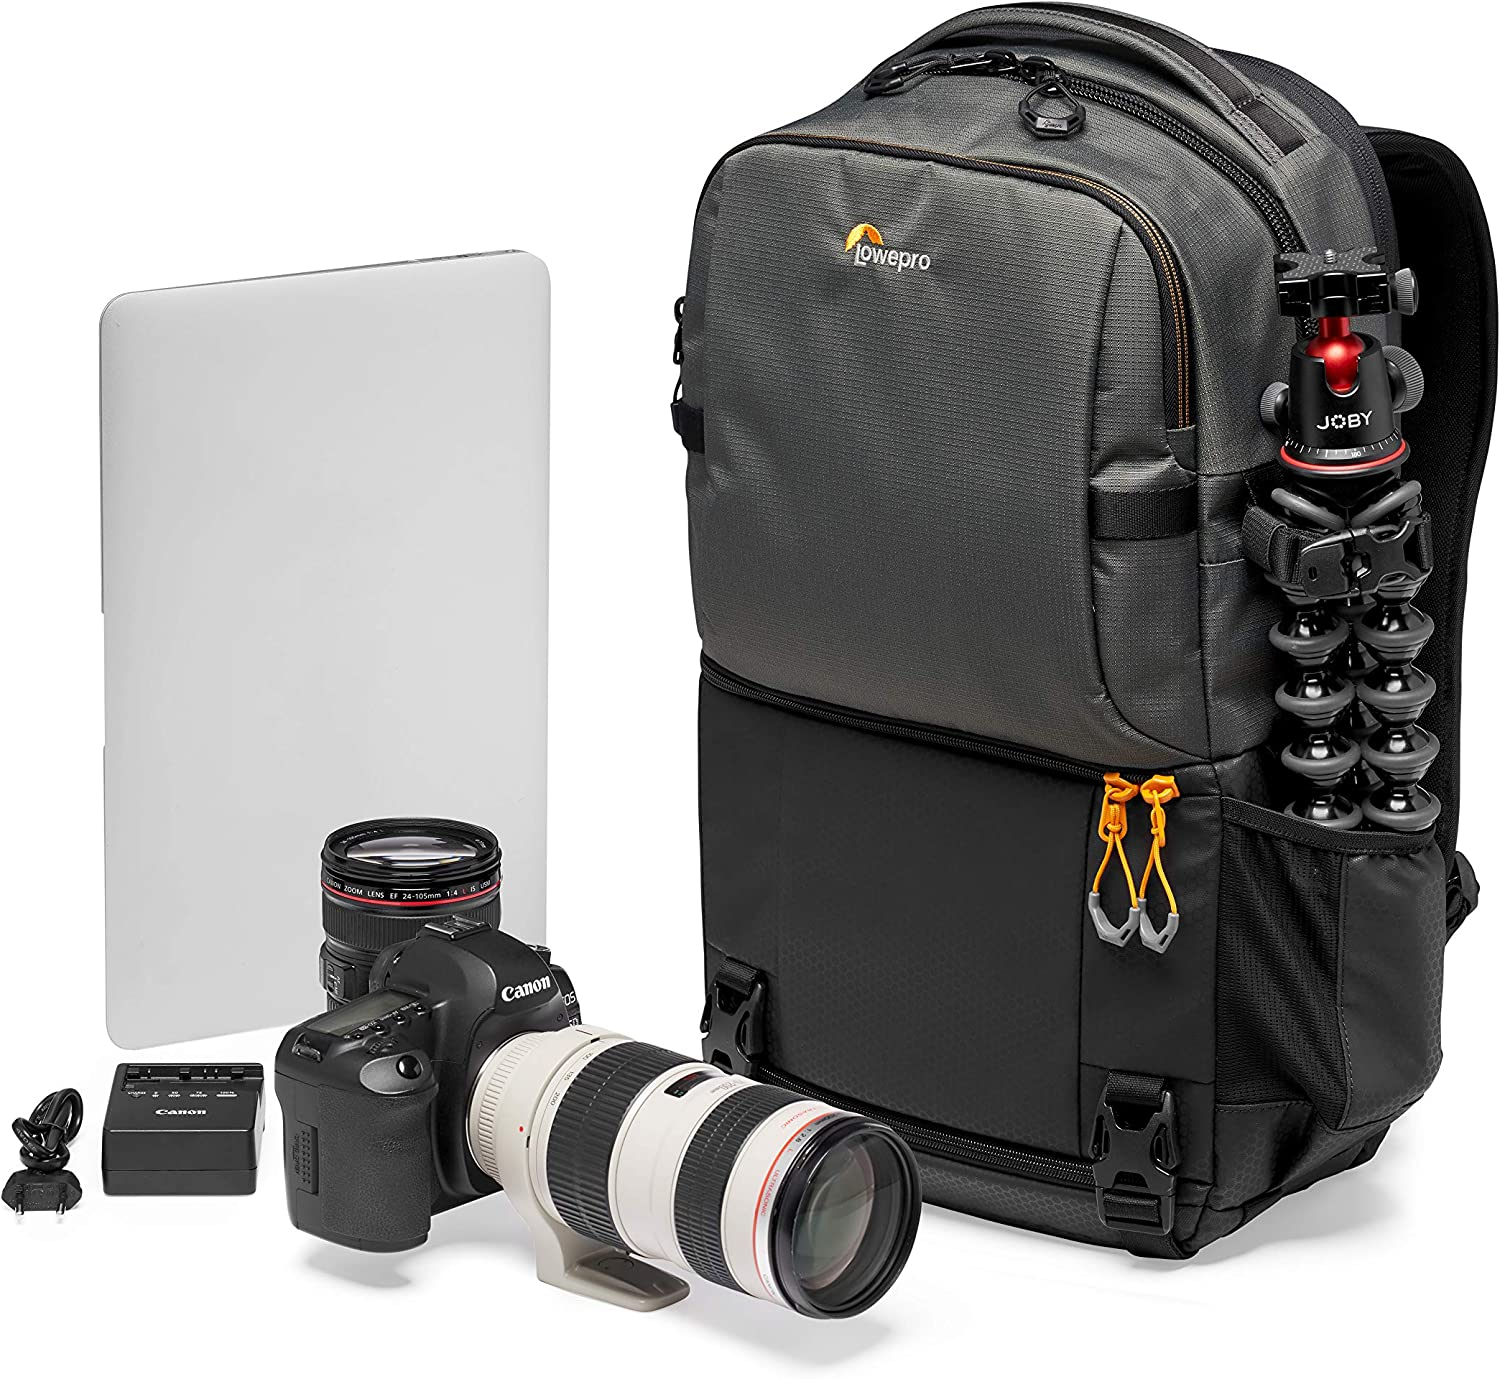 Lowepro Fastpack BP 250 AW III Mirrorless DSLR Camera Backpack with QuickDoor Access and 13 Inch Laptop Compart- DSLR accessories, Camera Bag Backpack for Cameras Like Nikon D850, 300D Ripstop,Grey